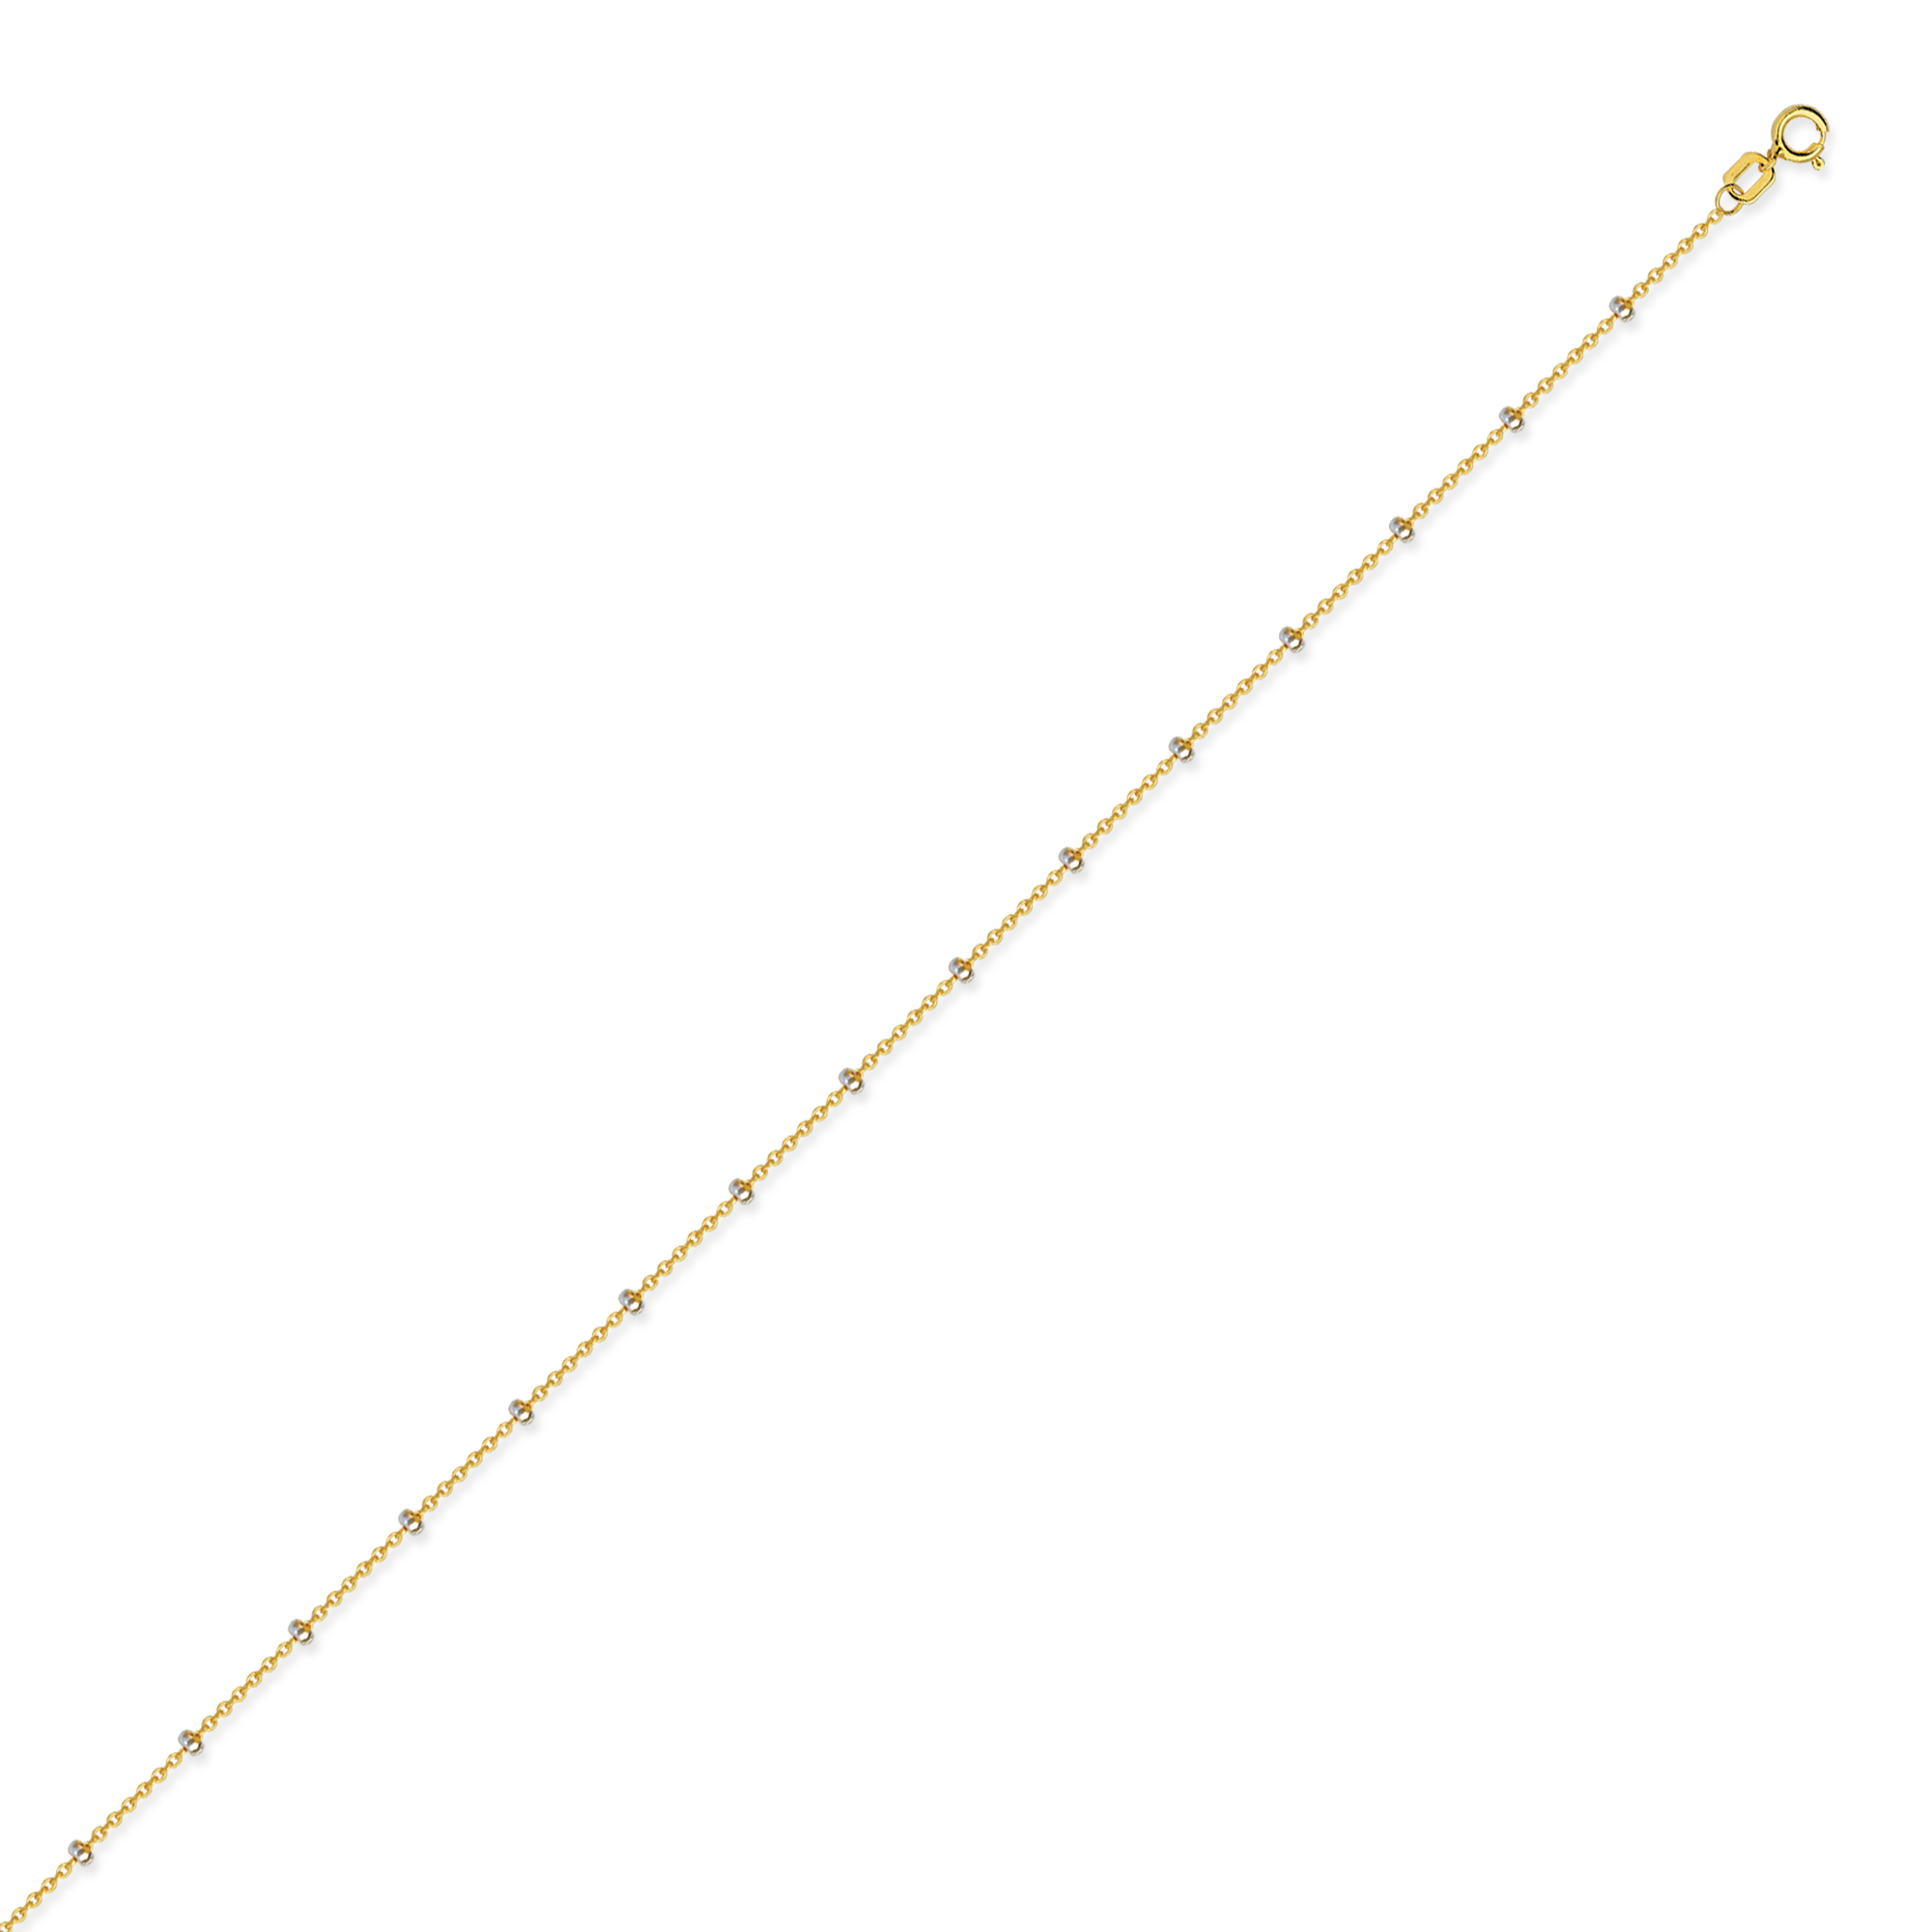 Cable Chain , 14Kt Gold  Cable Chain  / 24